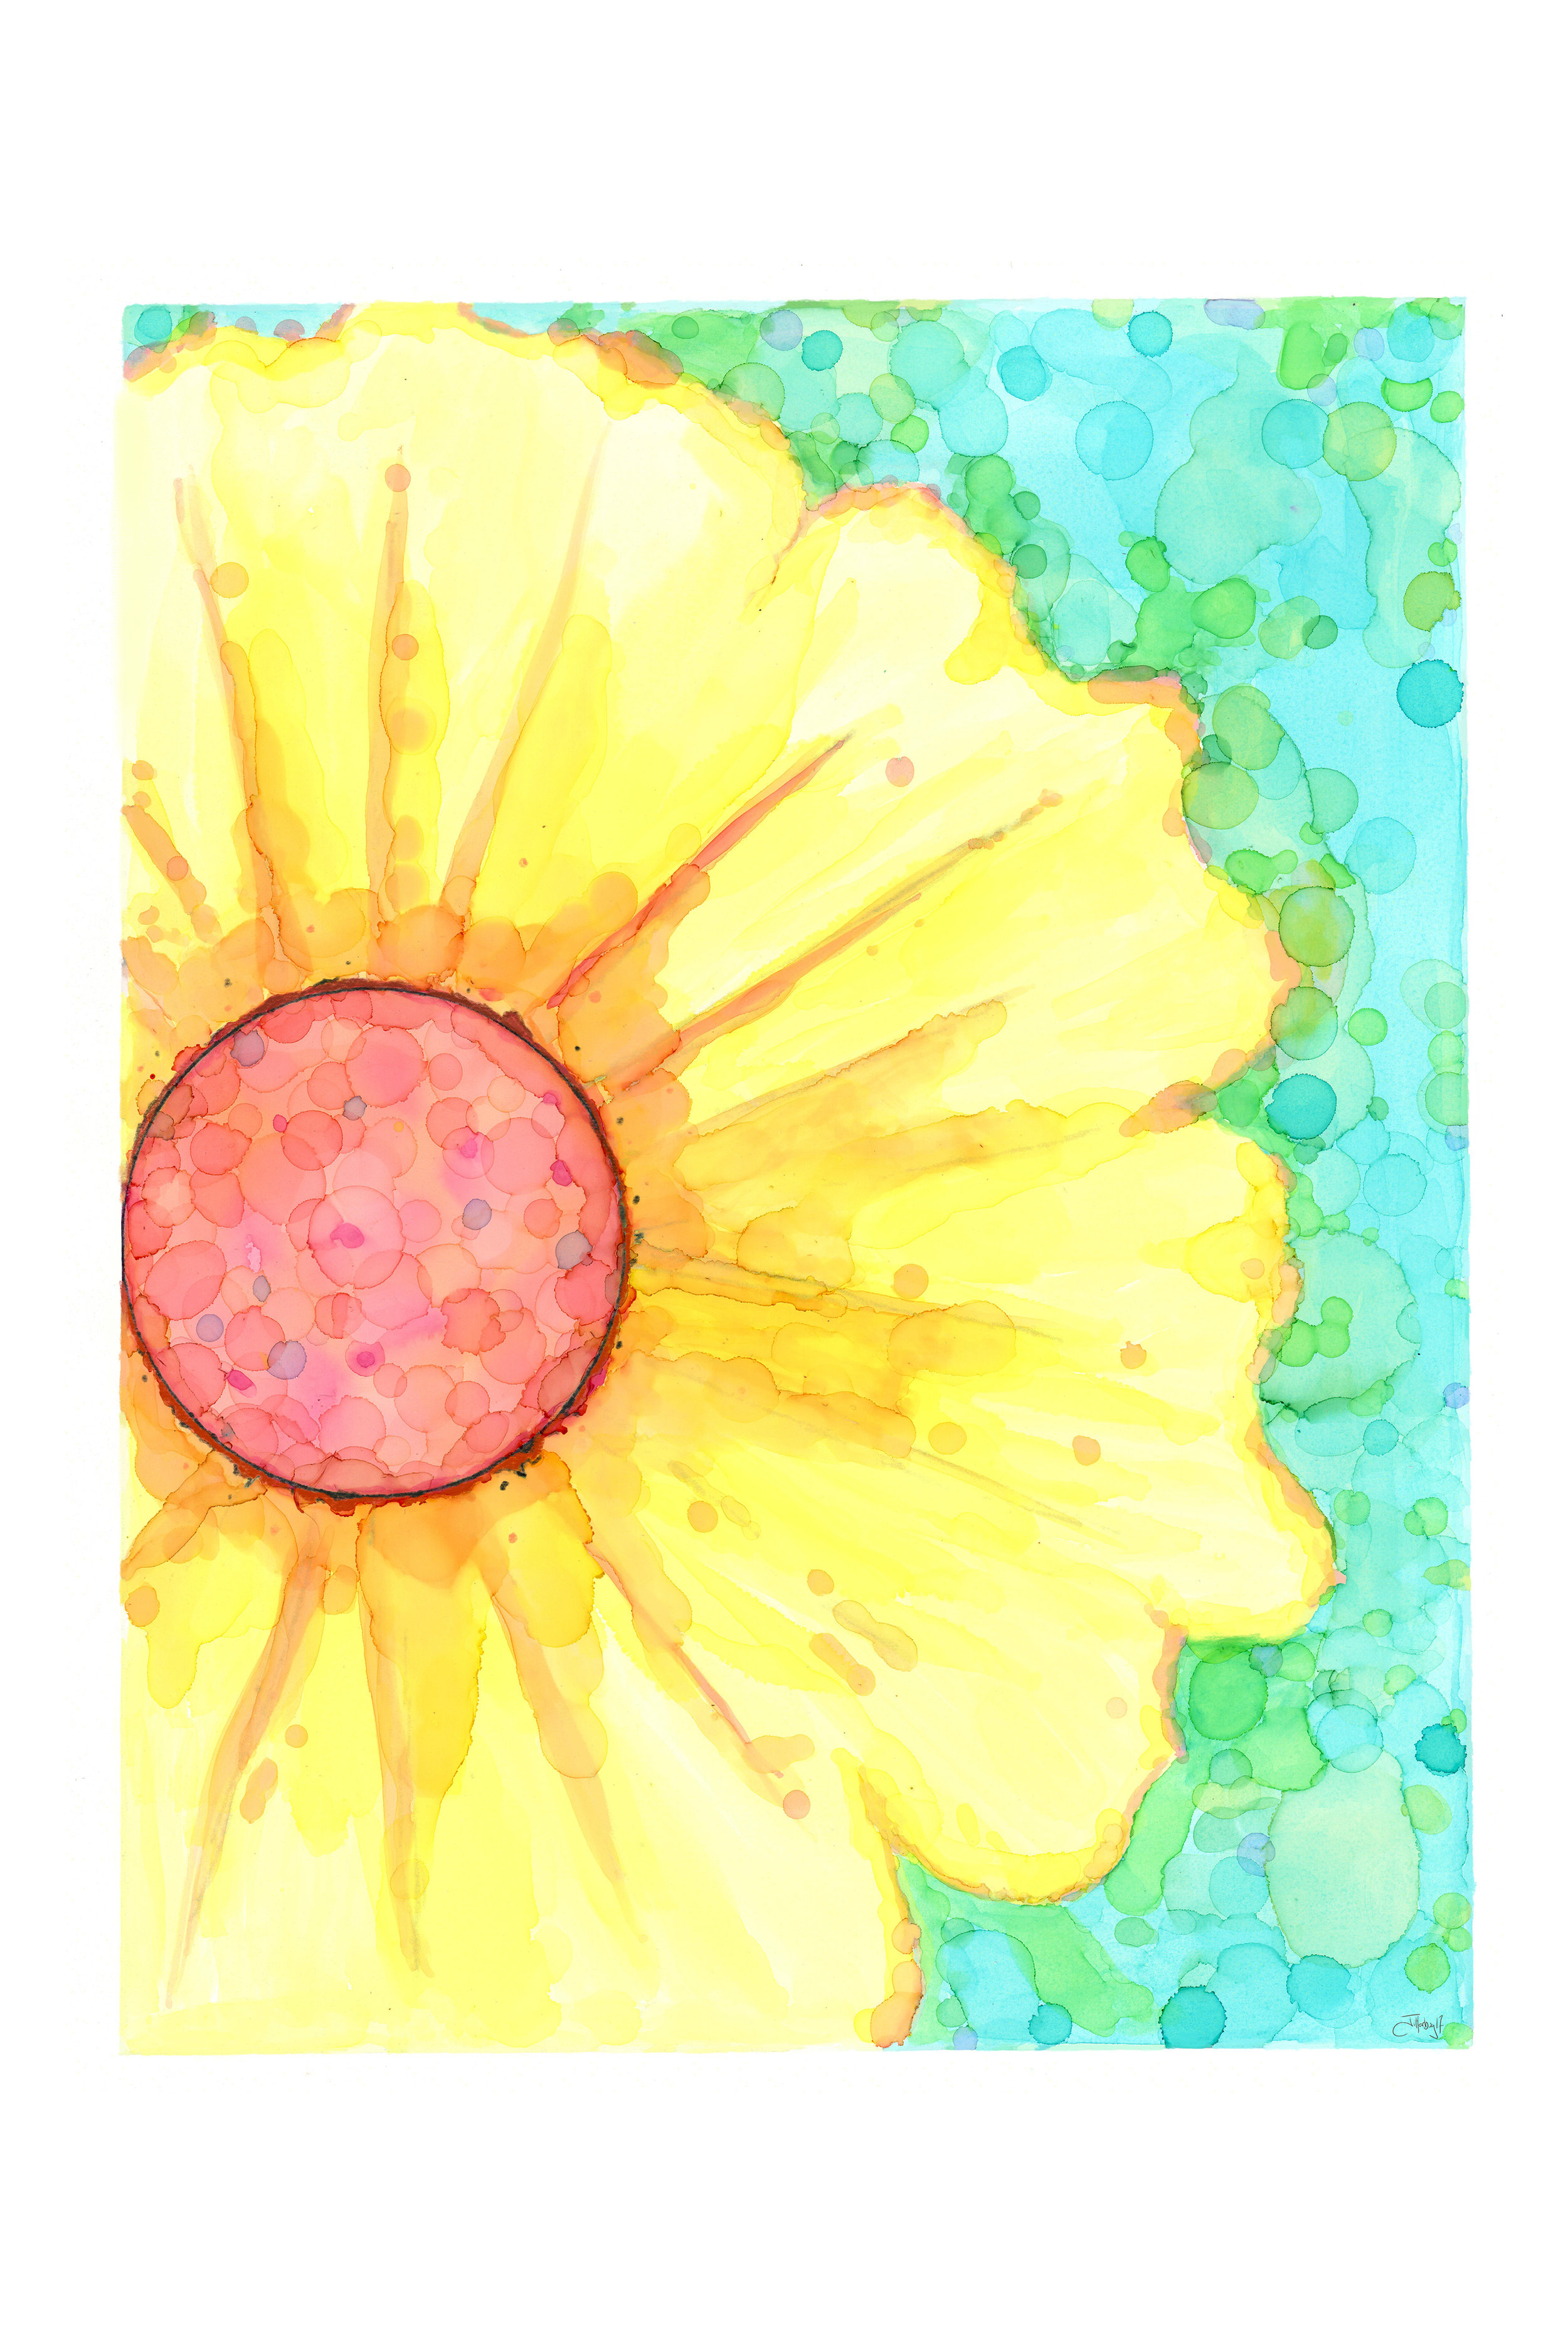 Daisy Day - Art Print on Paper or Canvas